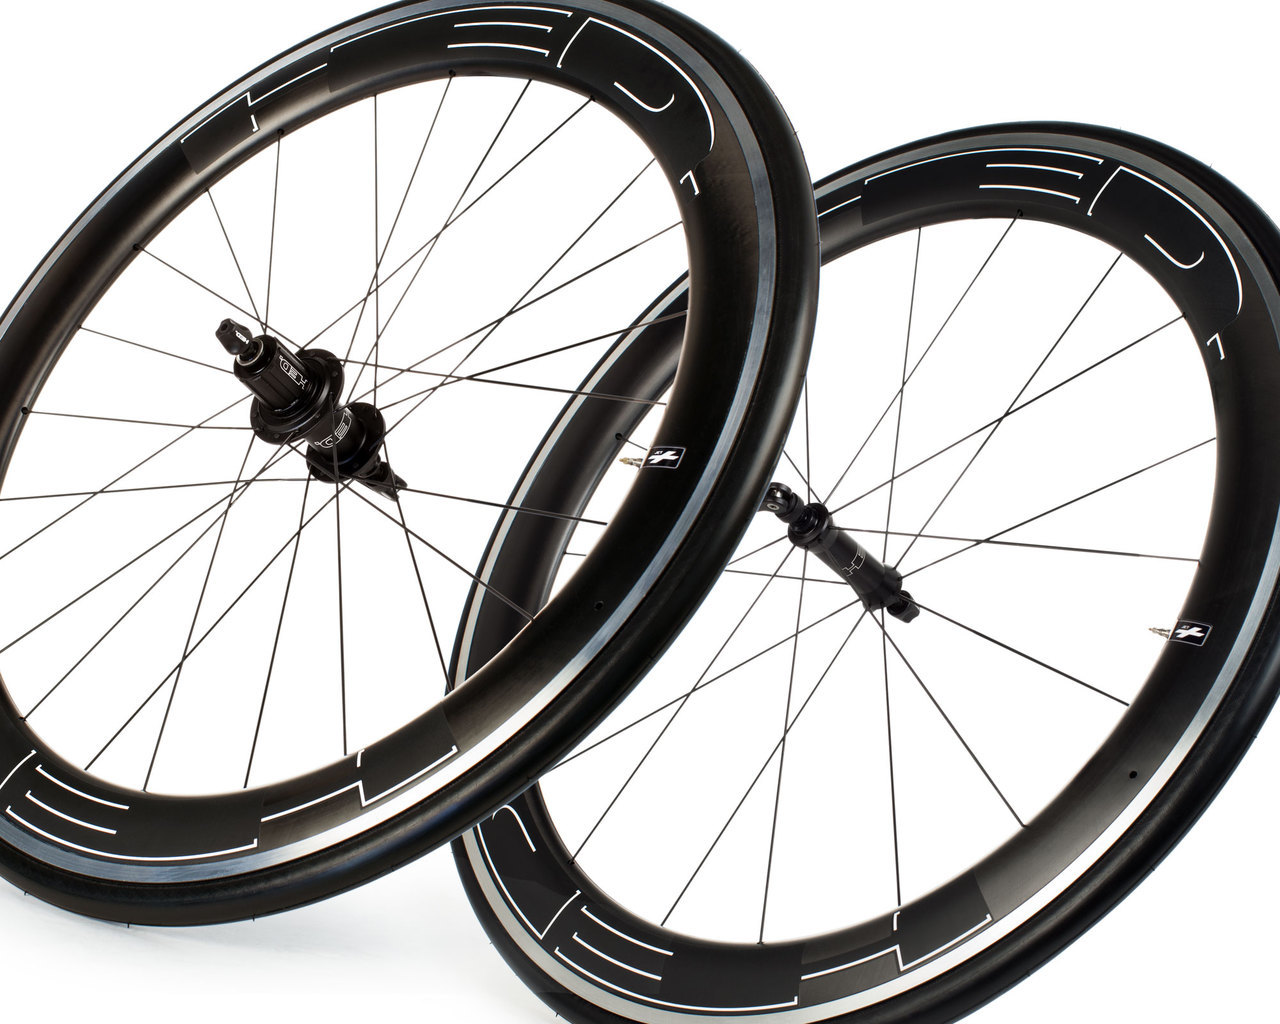 7888556aa9e Triathlon Tips: Best Value Aero Wheels for Ironman Triathlon - HED ...